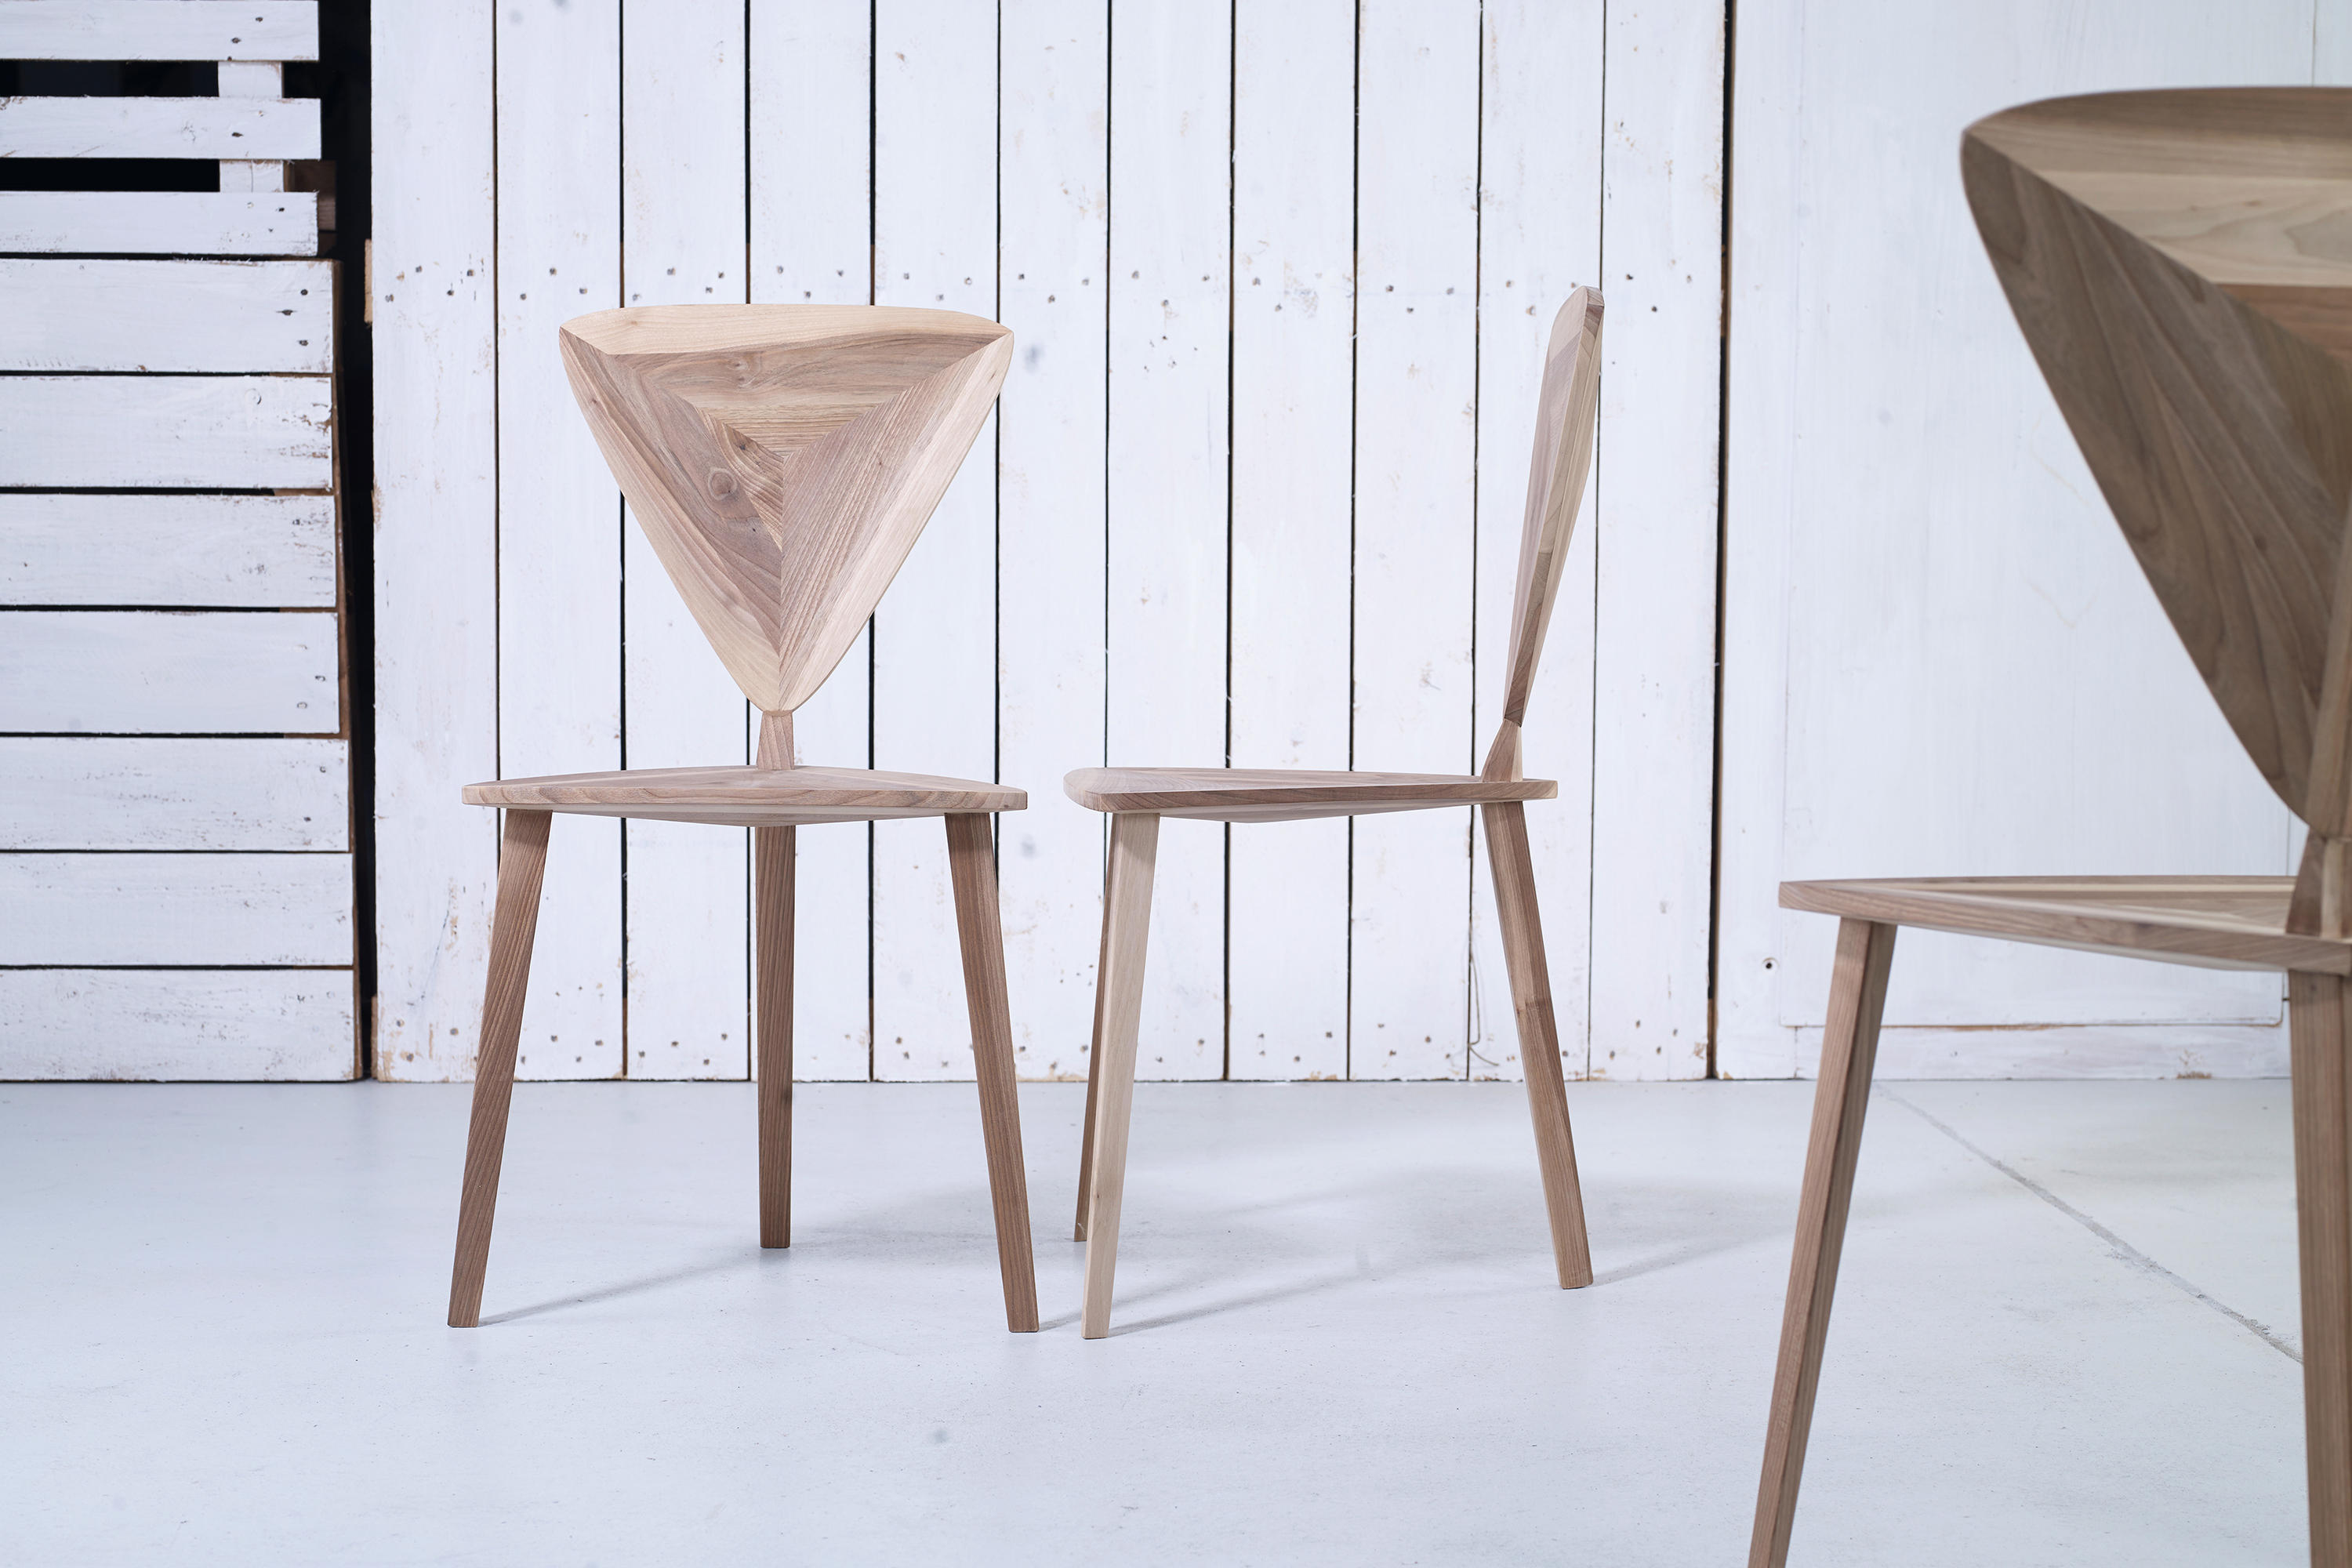 STEALTH CHAIR Restaurant chairs from Hookl und Stool